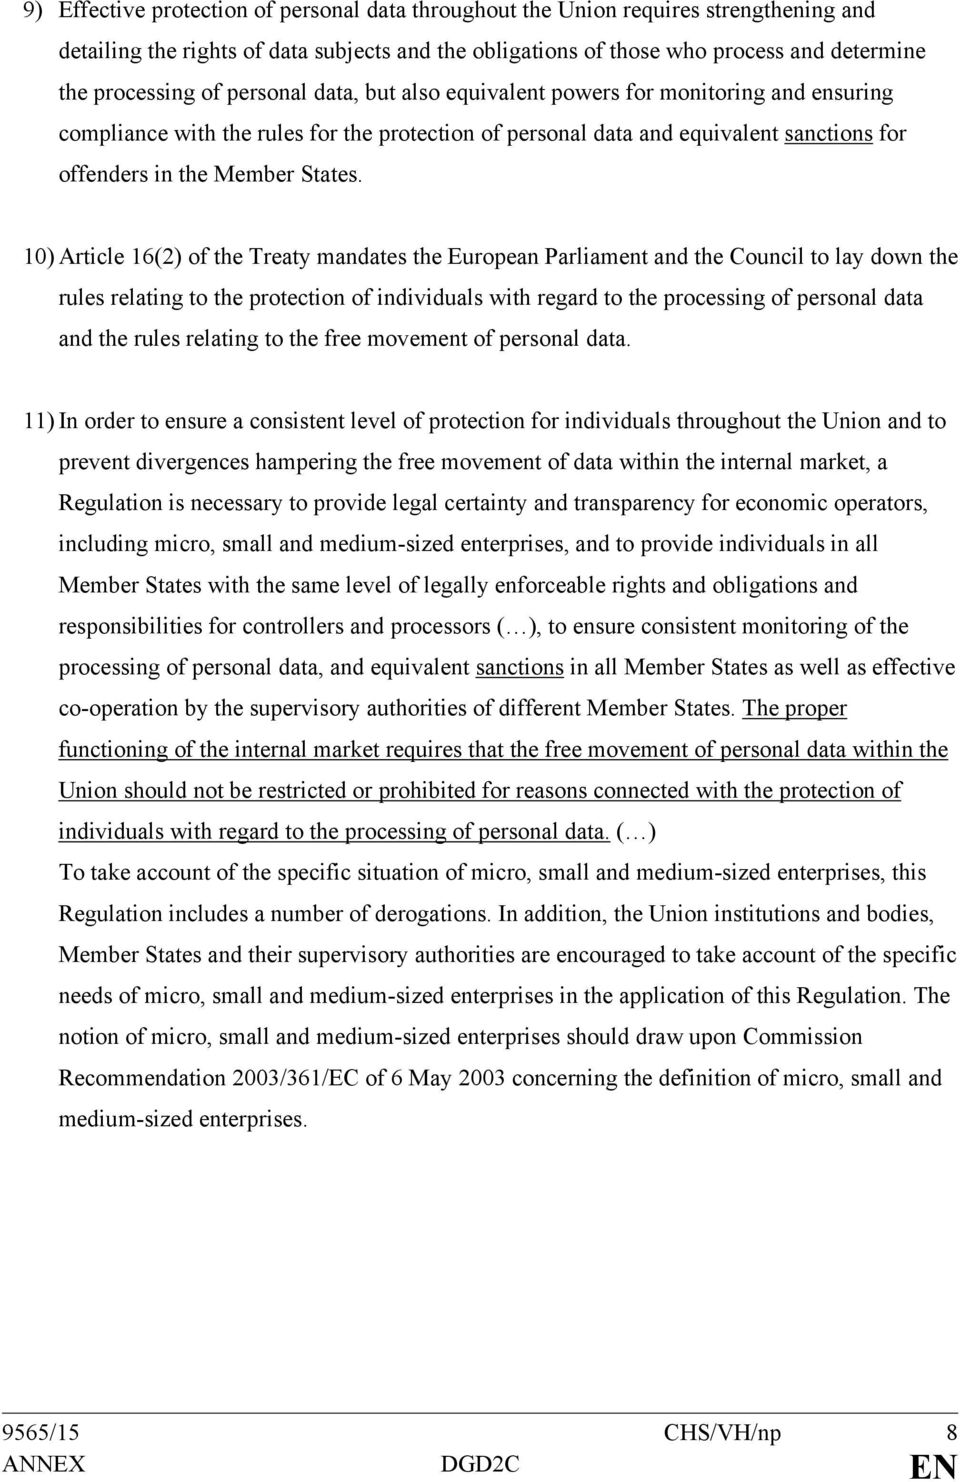 10) Article 16(2) of the Treaty mandates the European Parliament and the Council to lay down the rules relating to the protection of individuals with regard to the processing of personal data and the